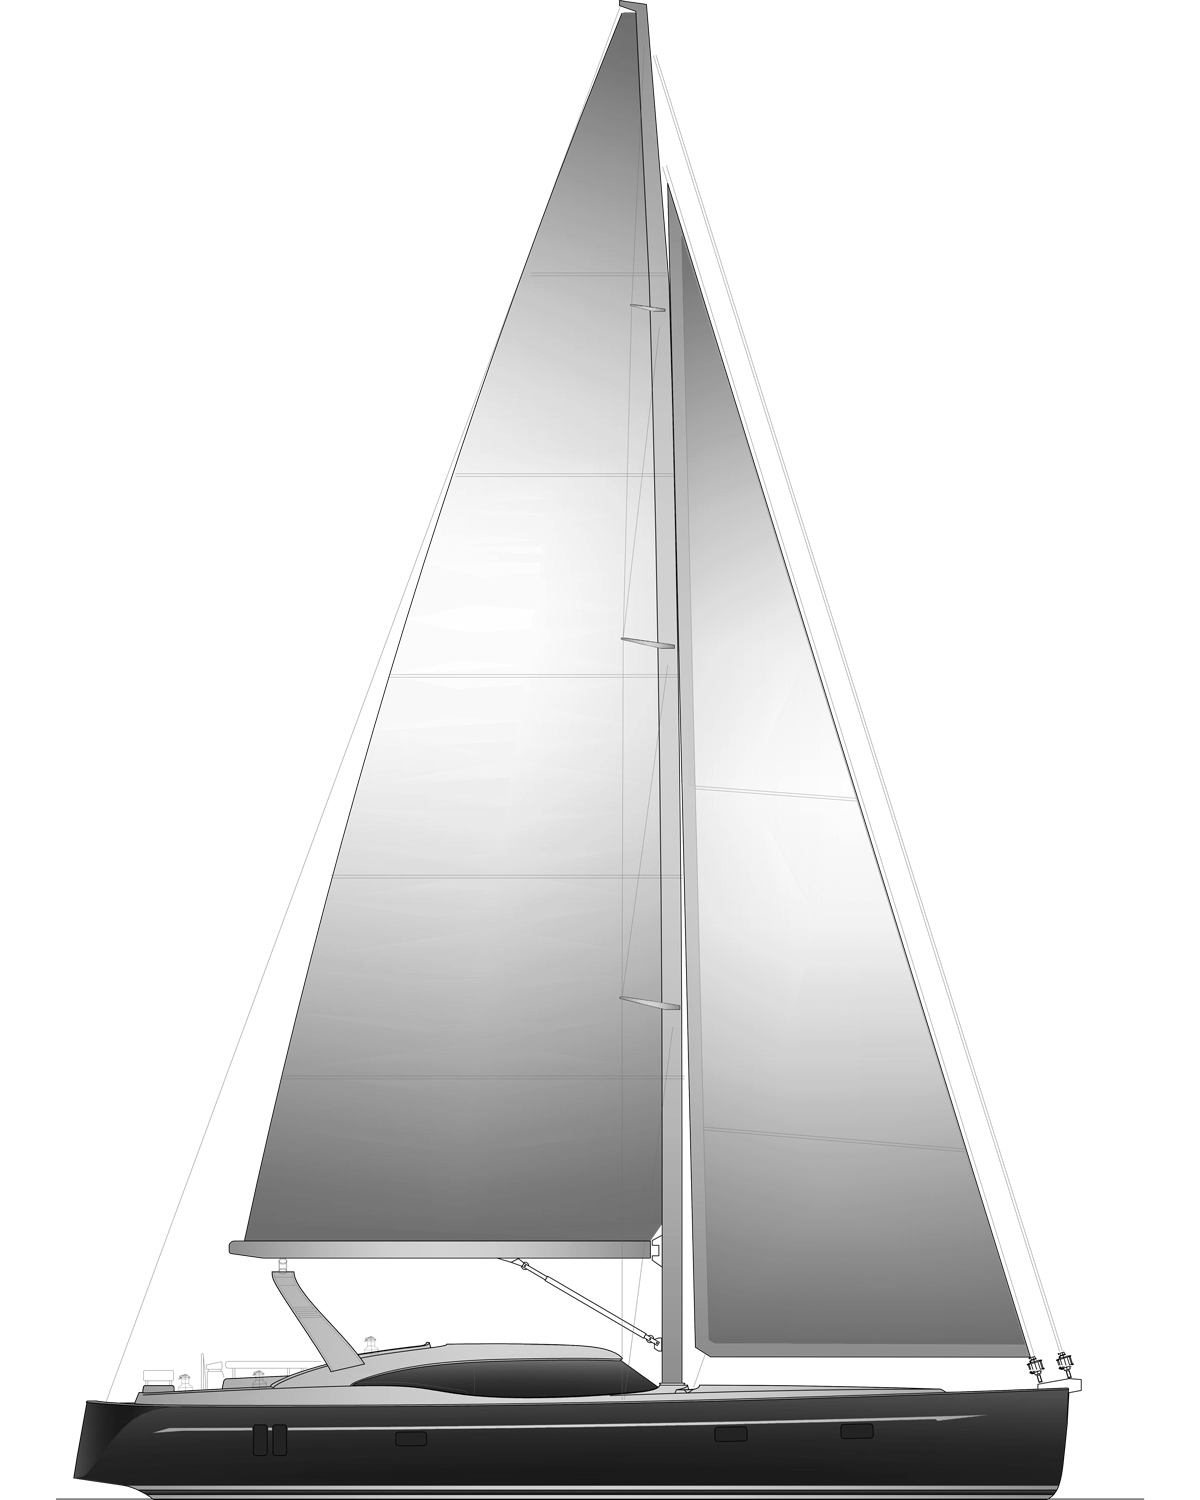 Amel 50 review: An indoor sailing experience to excite